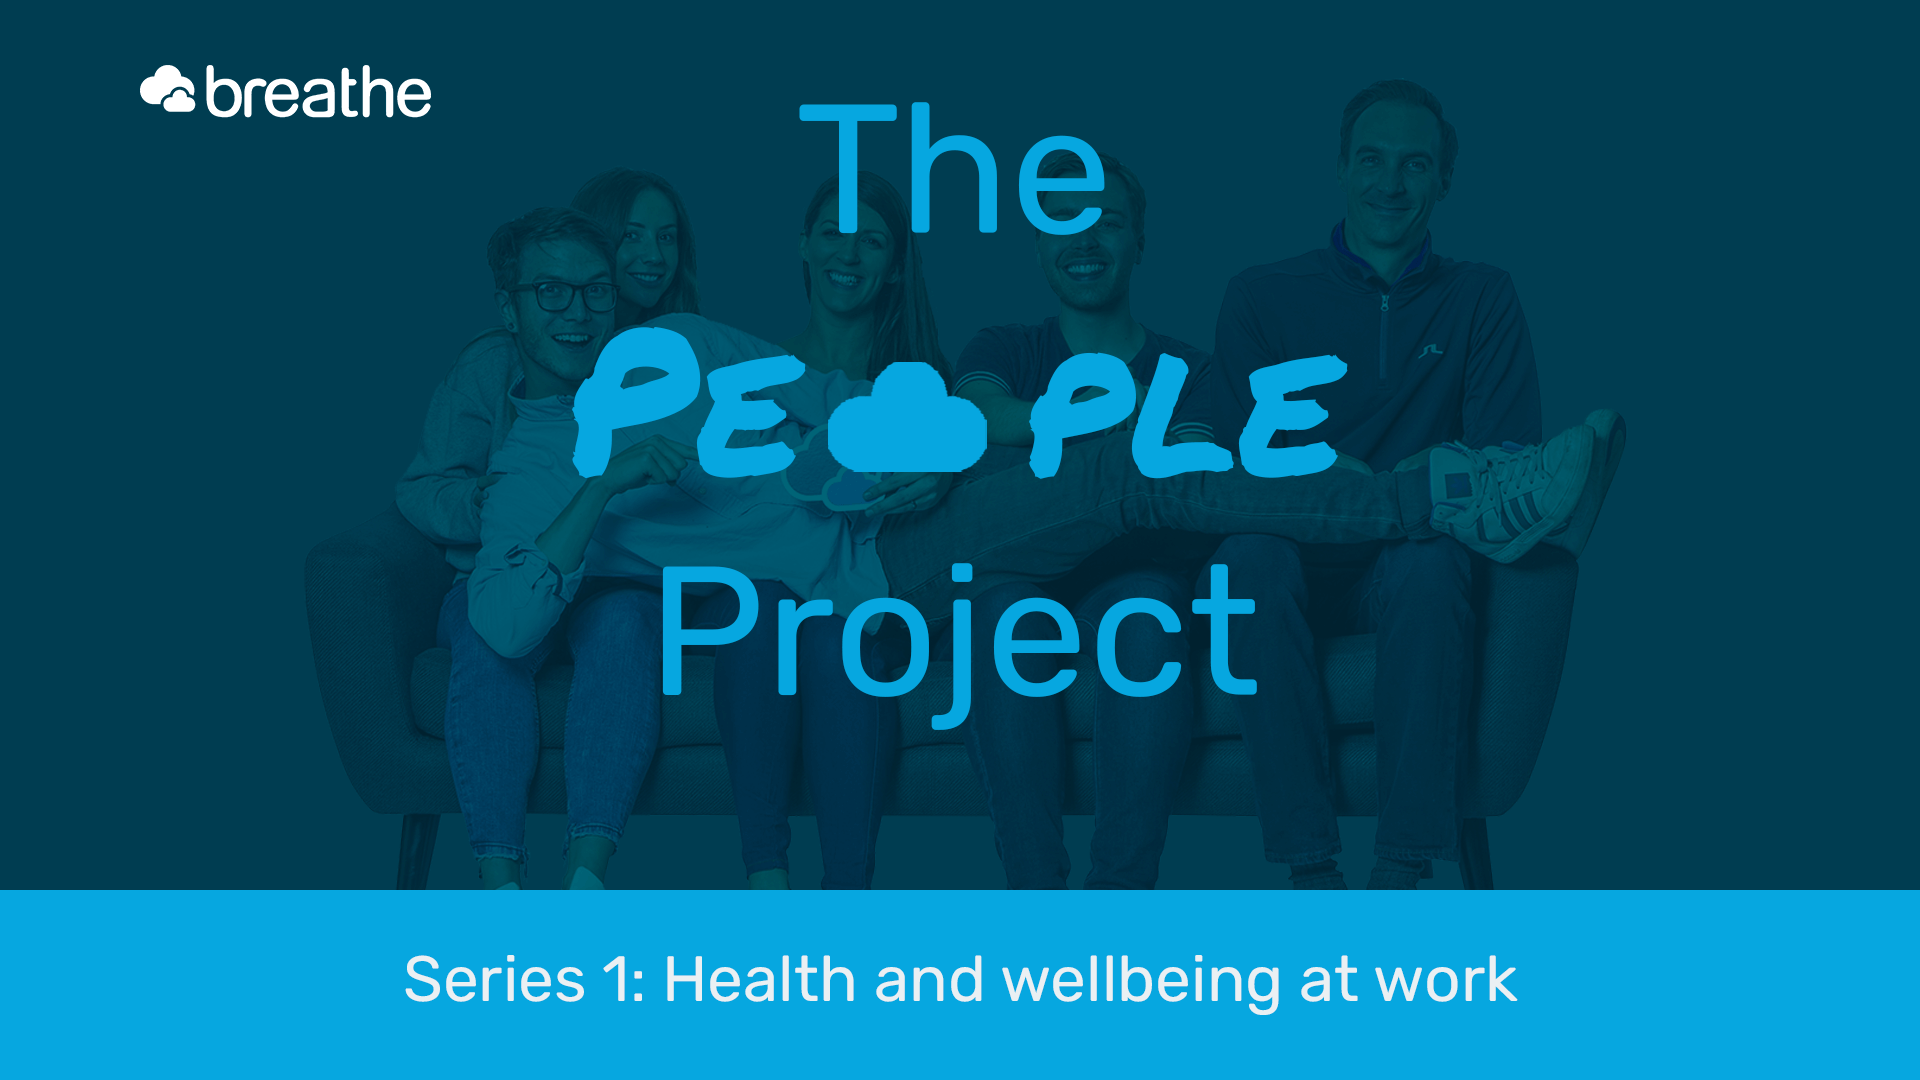 Series 1 - Health and wellbeing at work-1